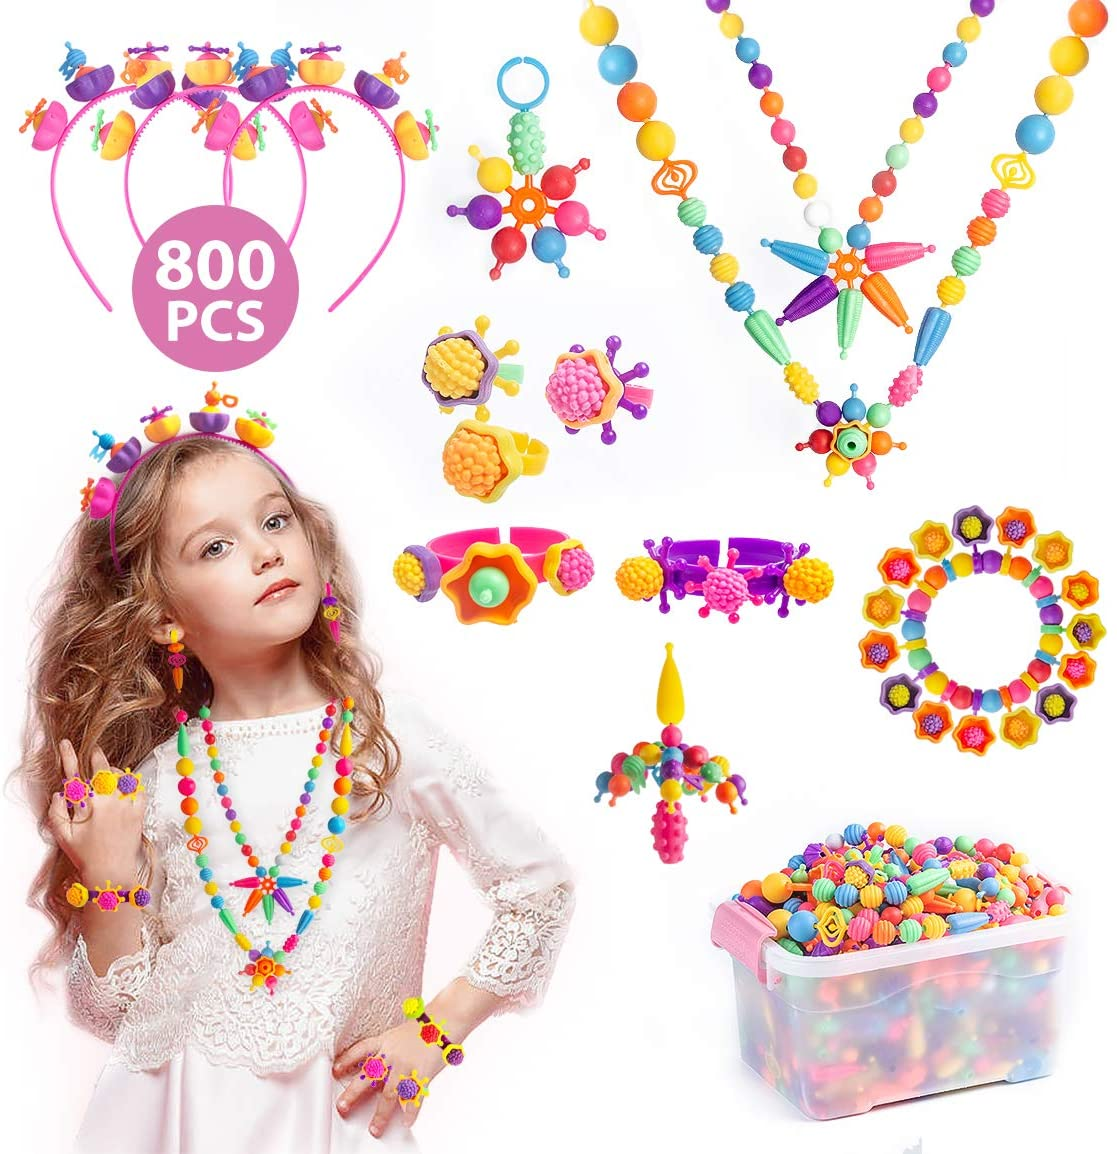 Subao Pop Beads Kids Arts and Crafts Creativity Toys for 3,4,5,6,7,8 Year Old Girls Gifts